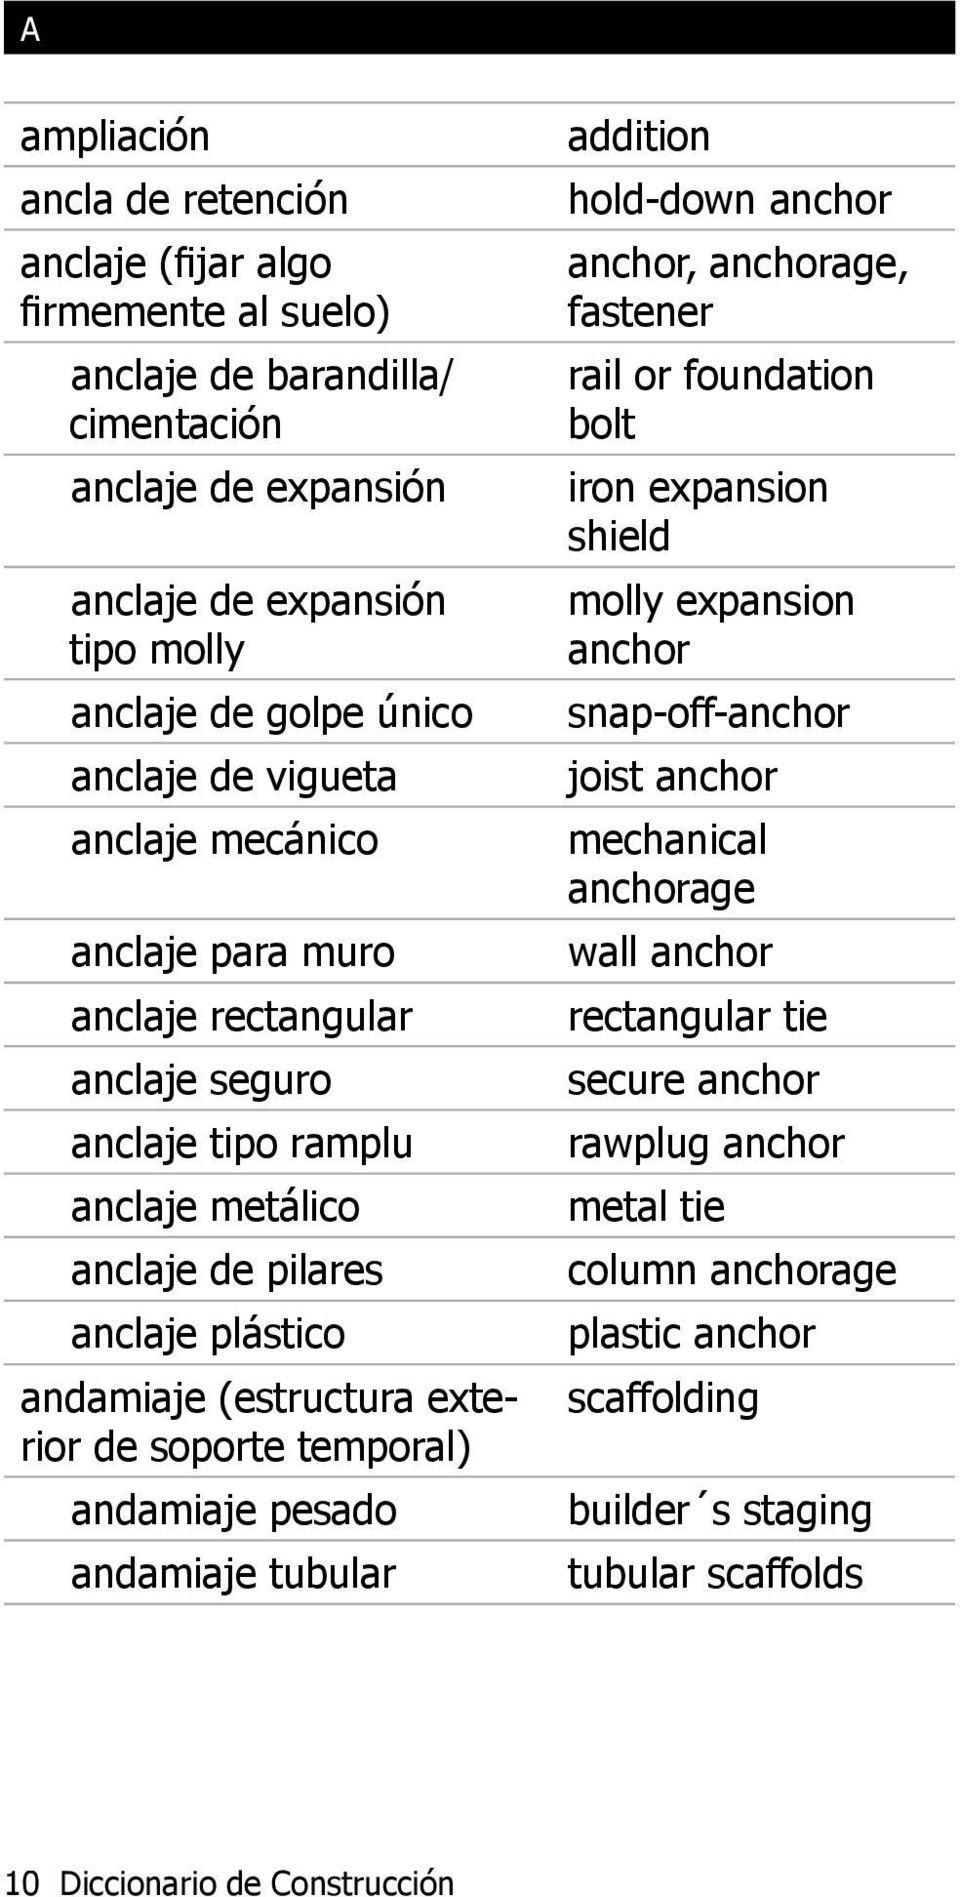 temporal) andamiaje pesado andamiaje tubular addition hold-down anchor anchor, anchorage, fastener rail or foundation bolt iron expansion shield molly expansion anchor snap-off-anchor joist